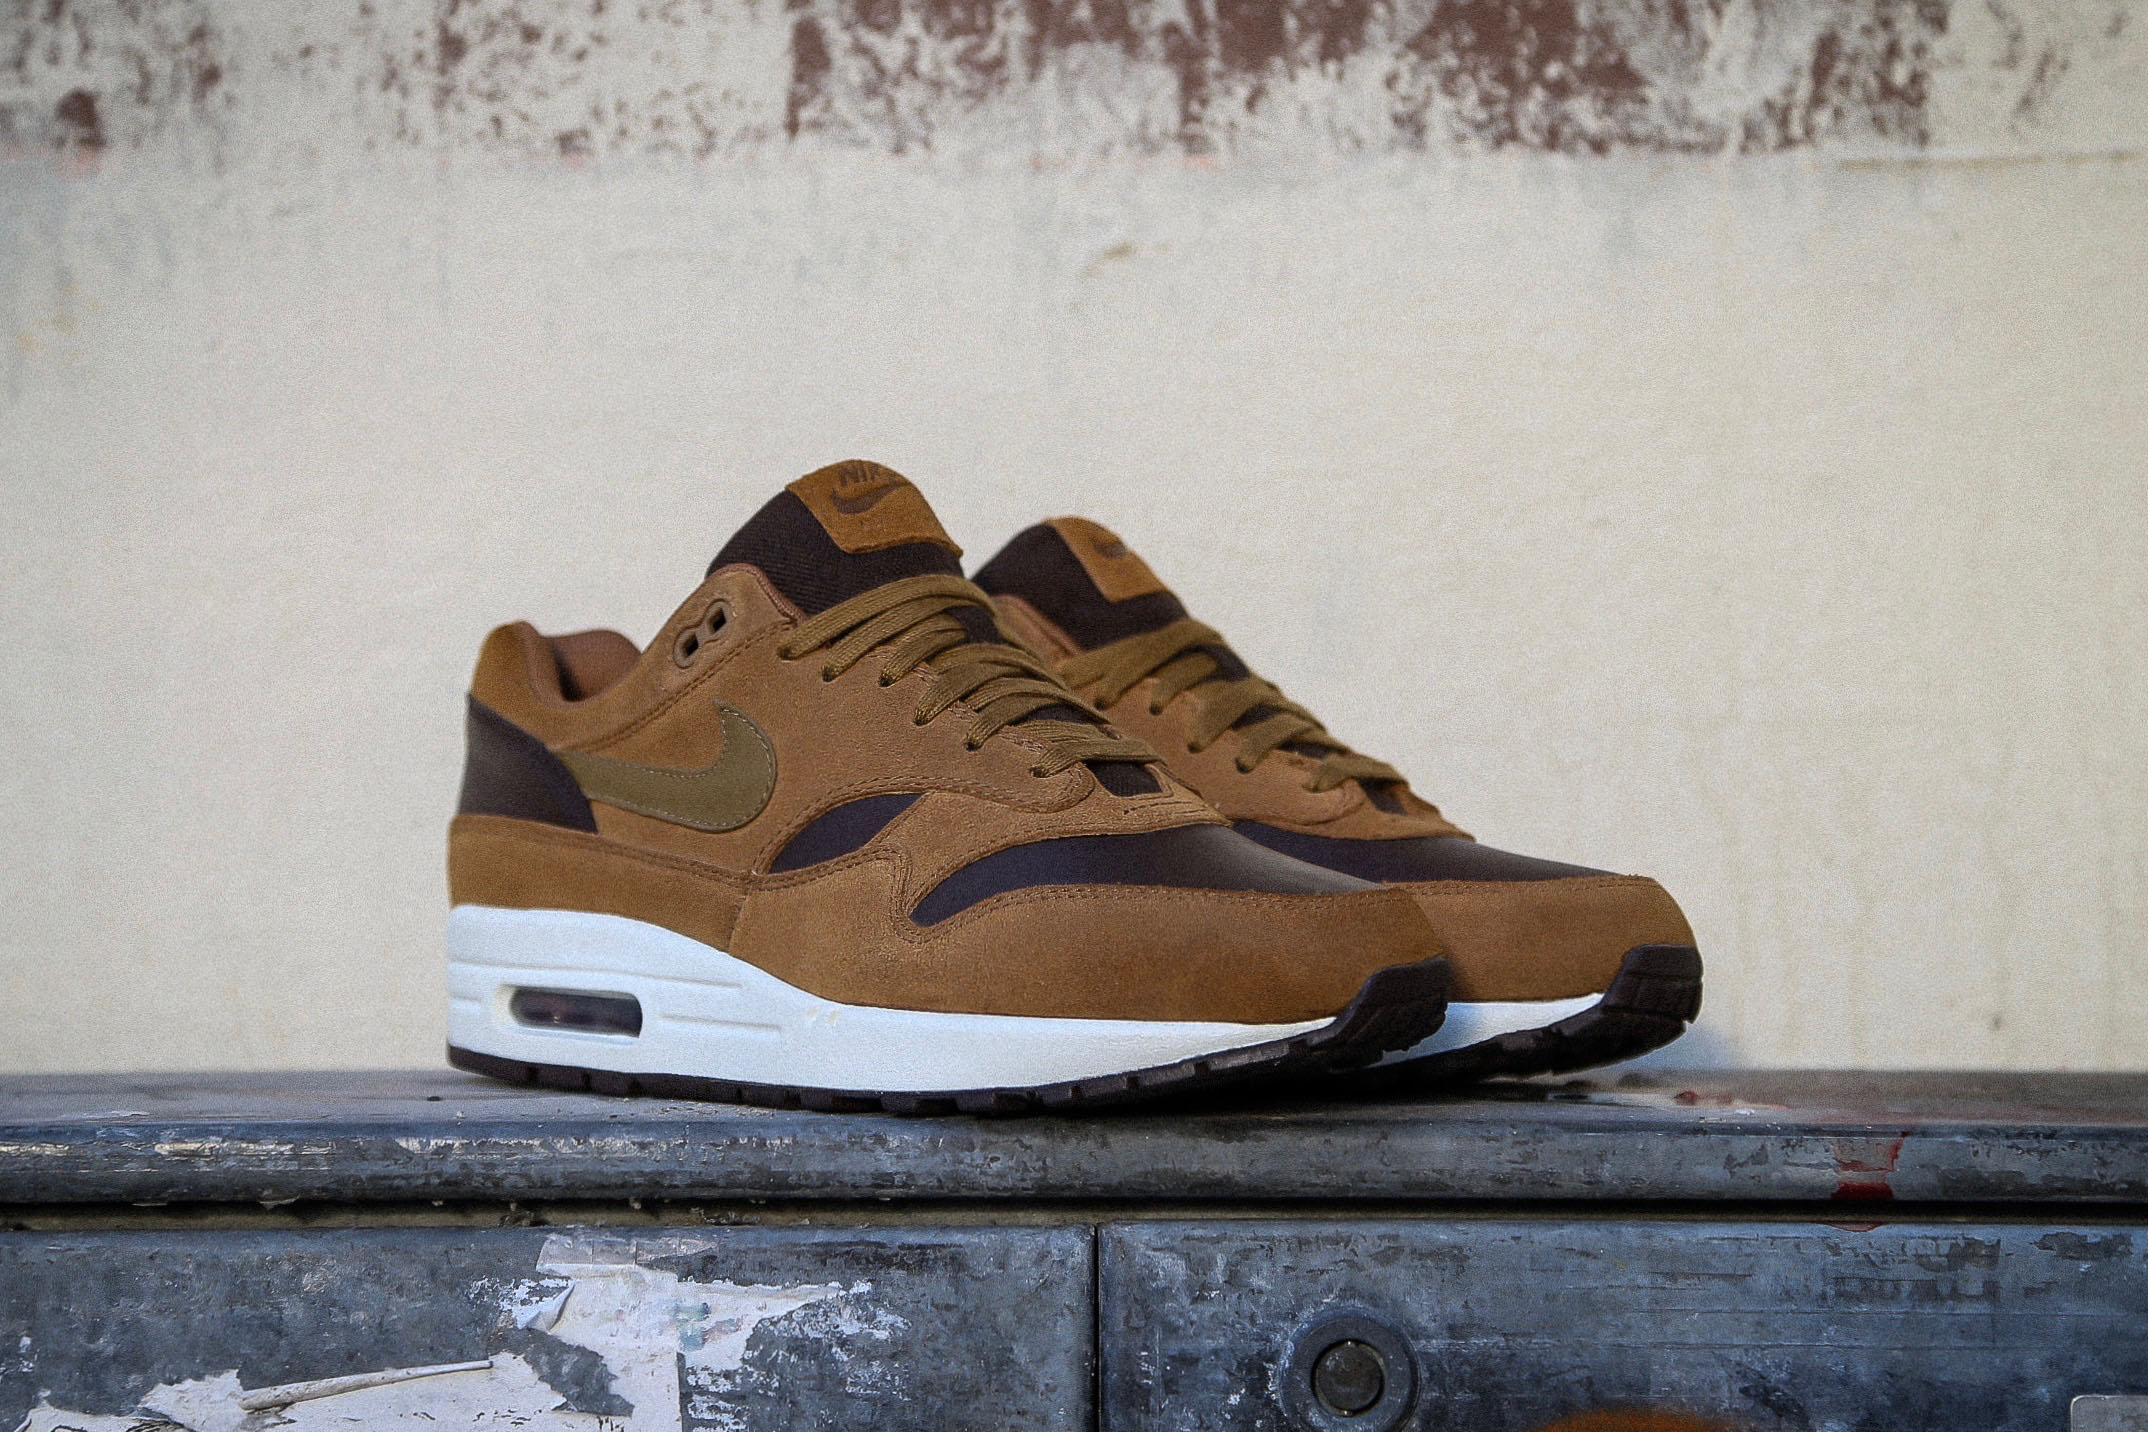 premium selection 724a5 508f4 Nike Air Max 1 Premium LTR – Ale Brown / Golden Beige – STASP